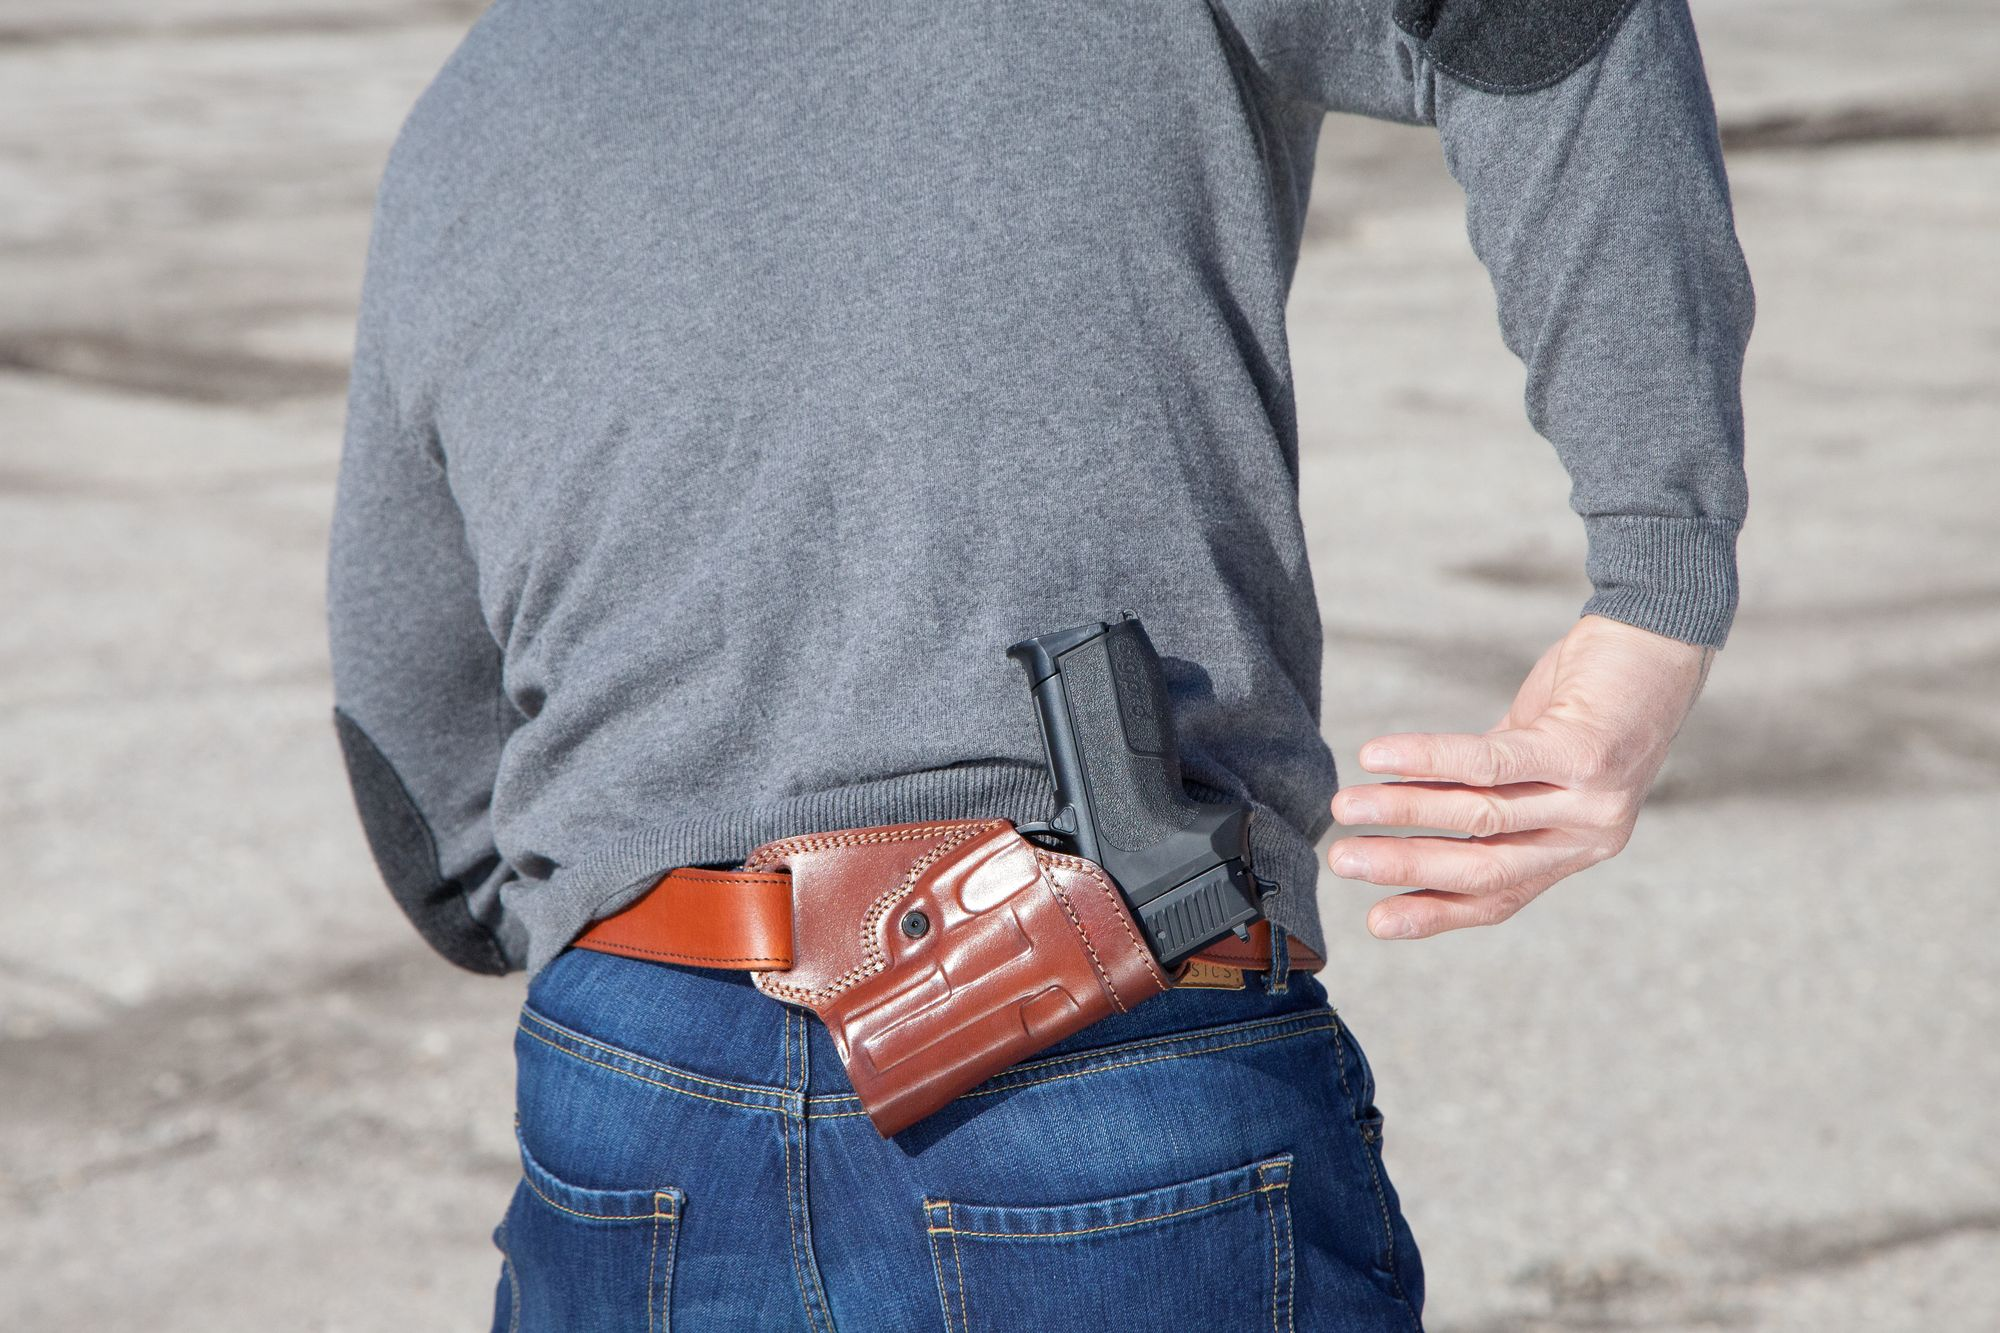 SOB (Small of Back) Leather Belt Holster - Craft Holsters®